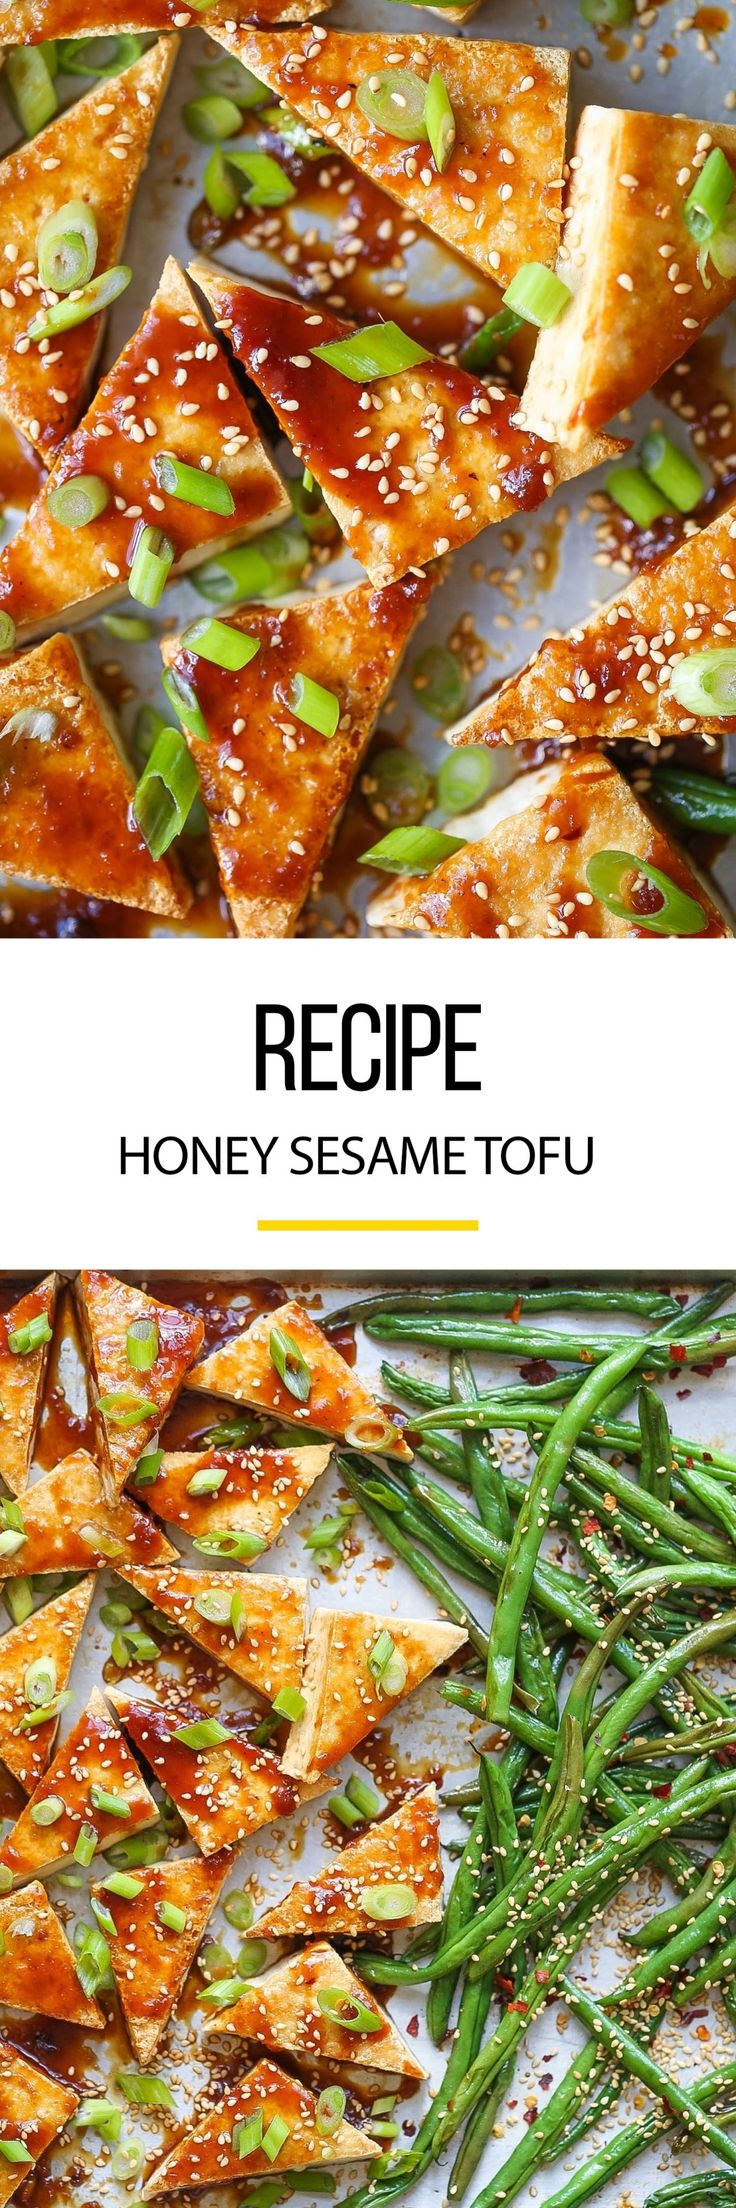 Looking for a healthy weeknight meal? This easy tofu recipe is a nice way to spice things up for a vegetarian. It's full of sesame seeds with a side of asparagus on a simple sheet pan.